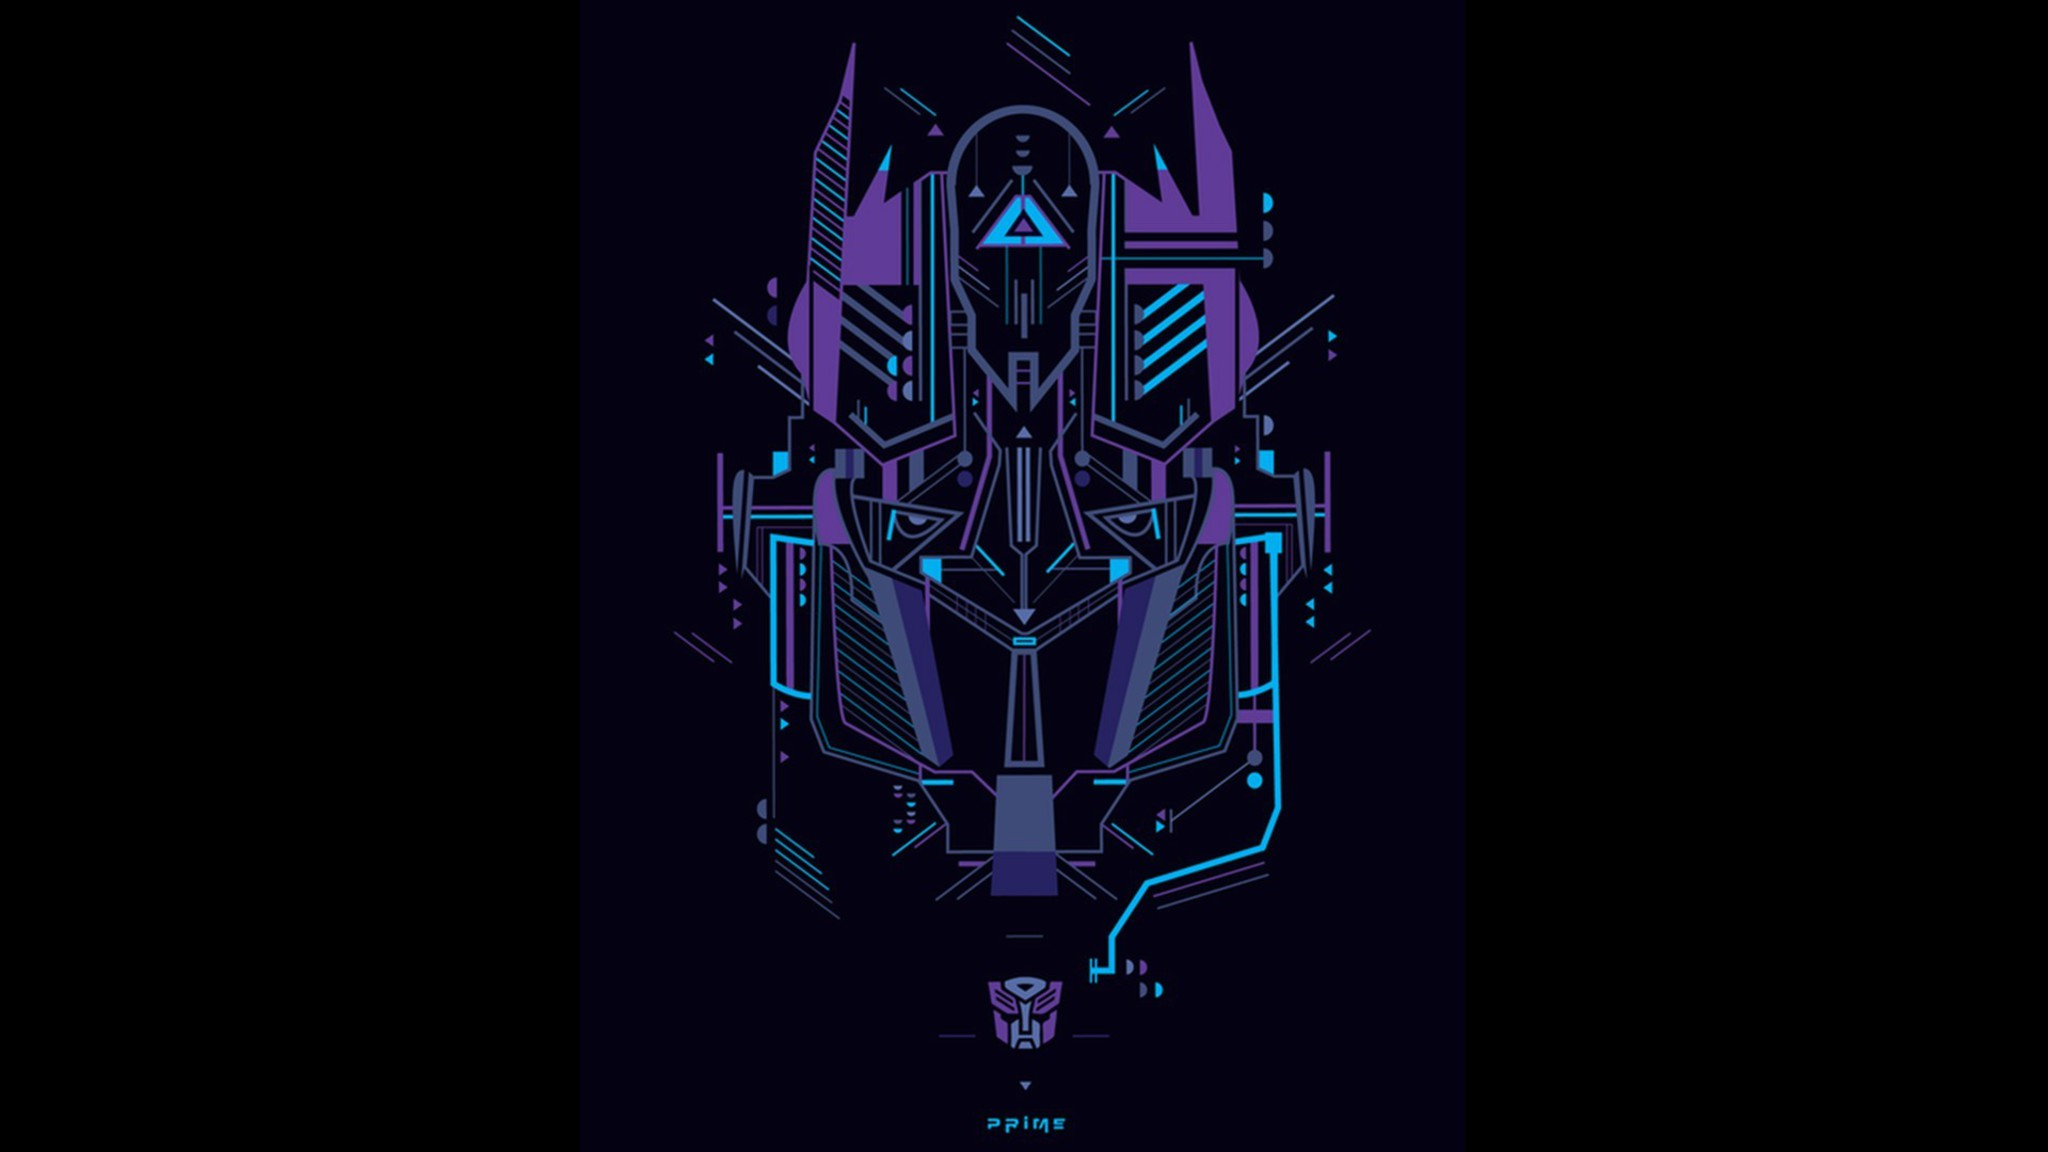 Transformers movies robots autobots fan art wallpaper - Fan wallpaper download ...